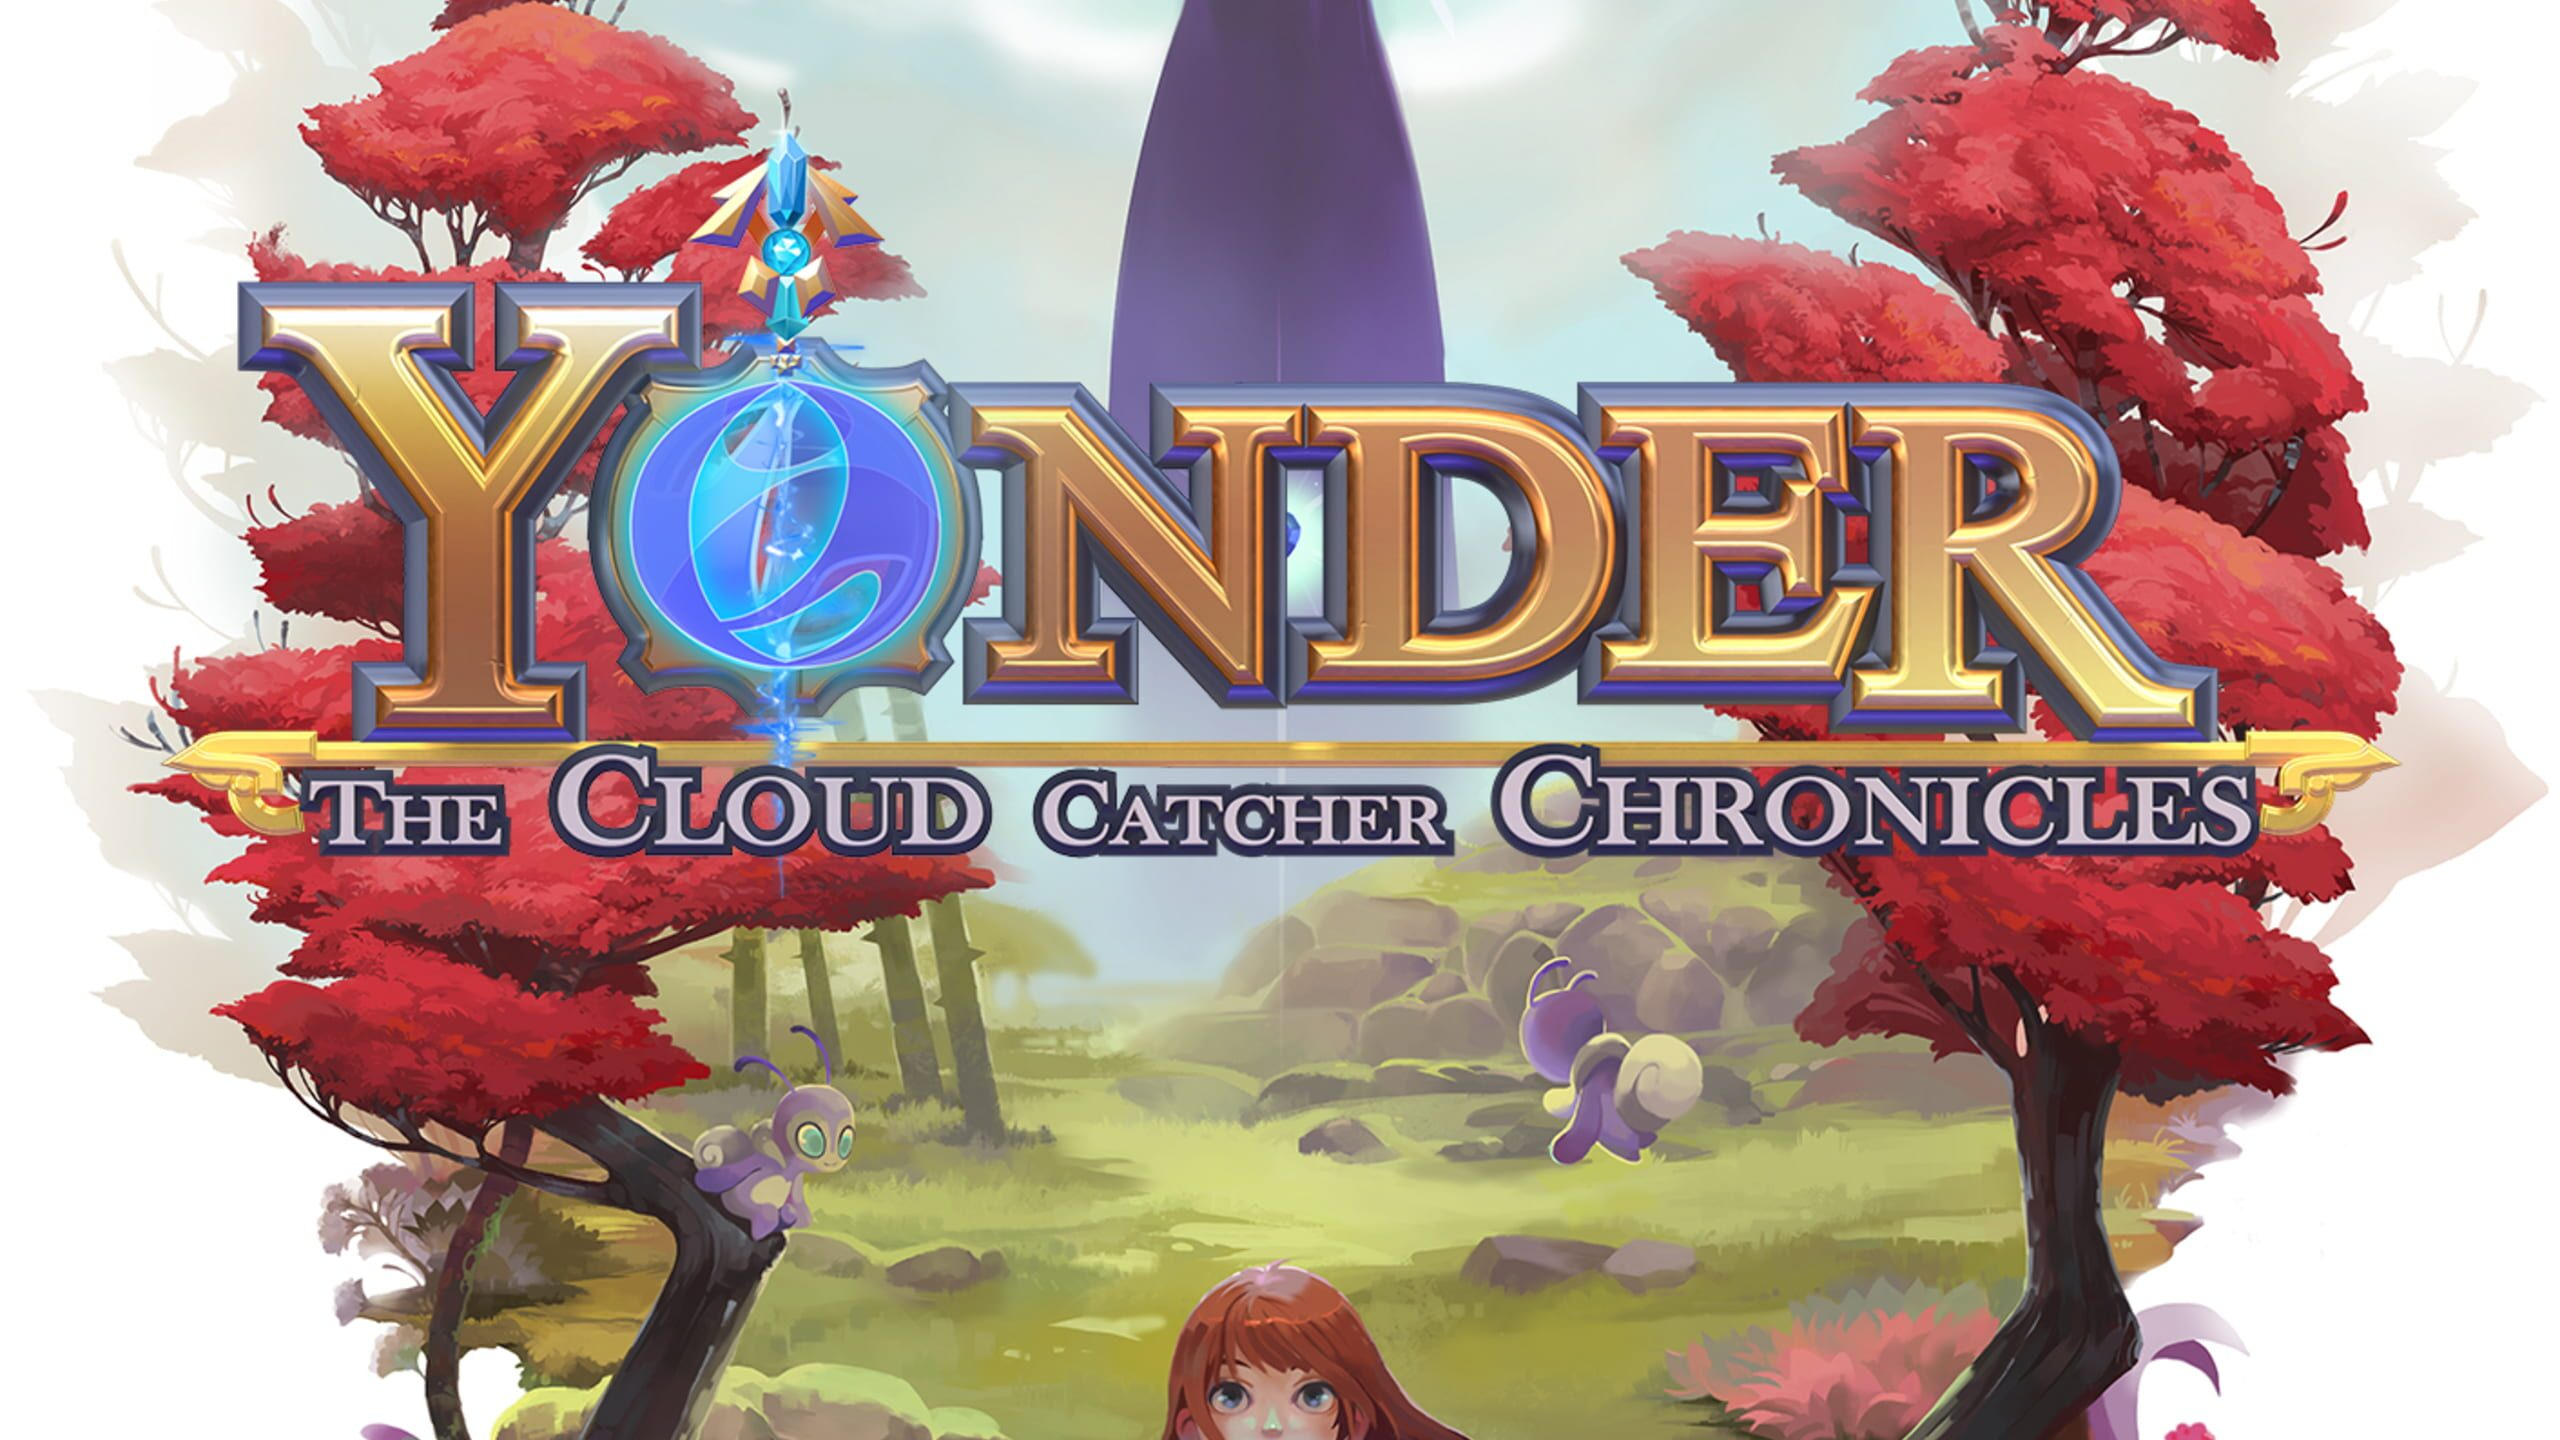 game cover art for Yonder: The Cloud Catcher Chronicles